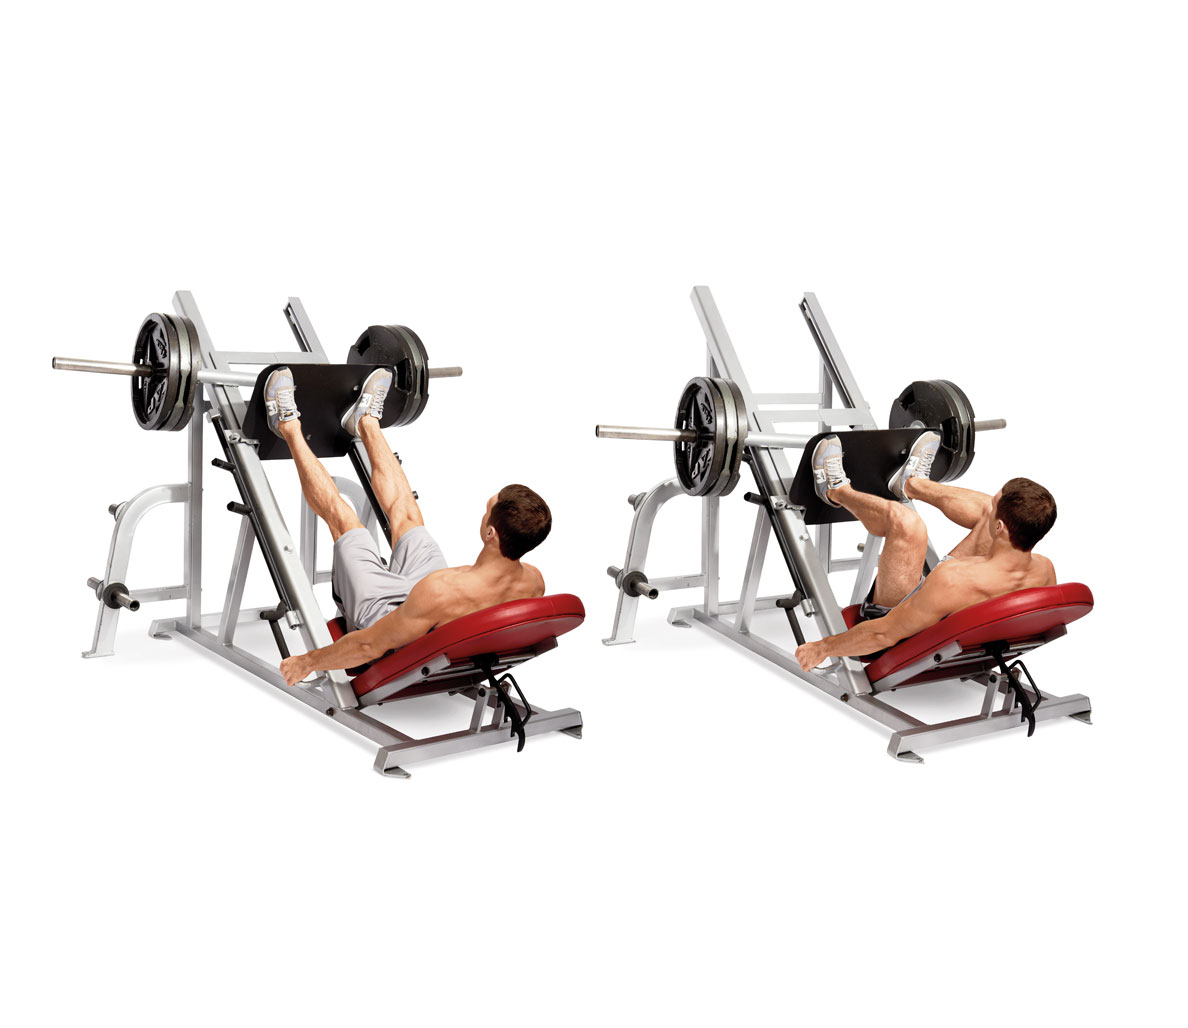 leg exercises for muscle growth